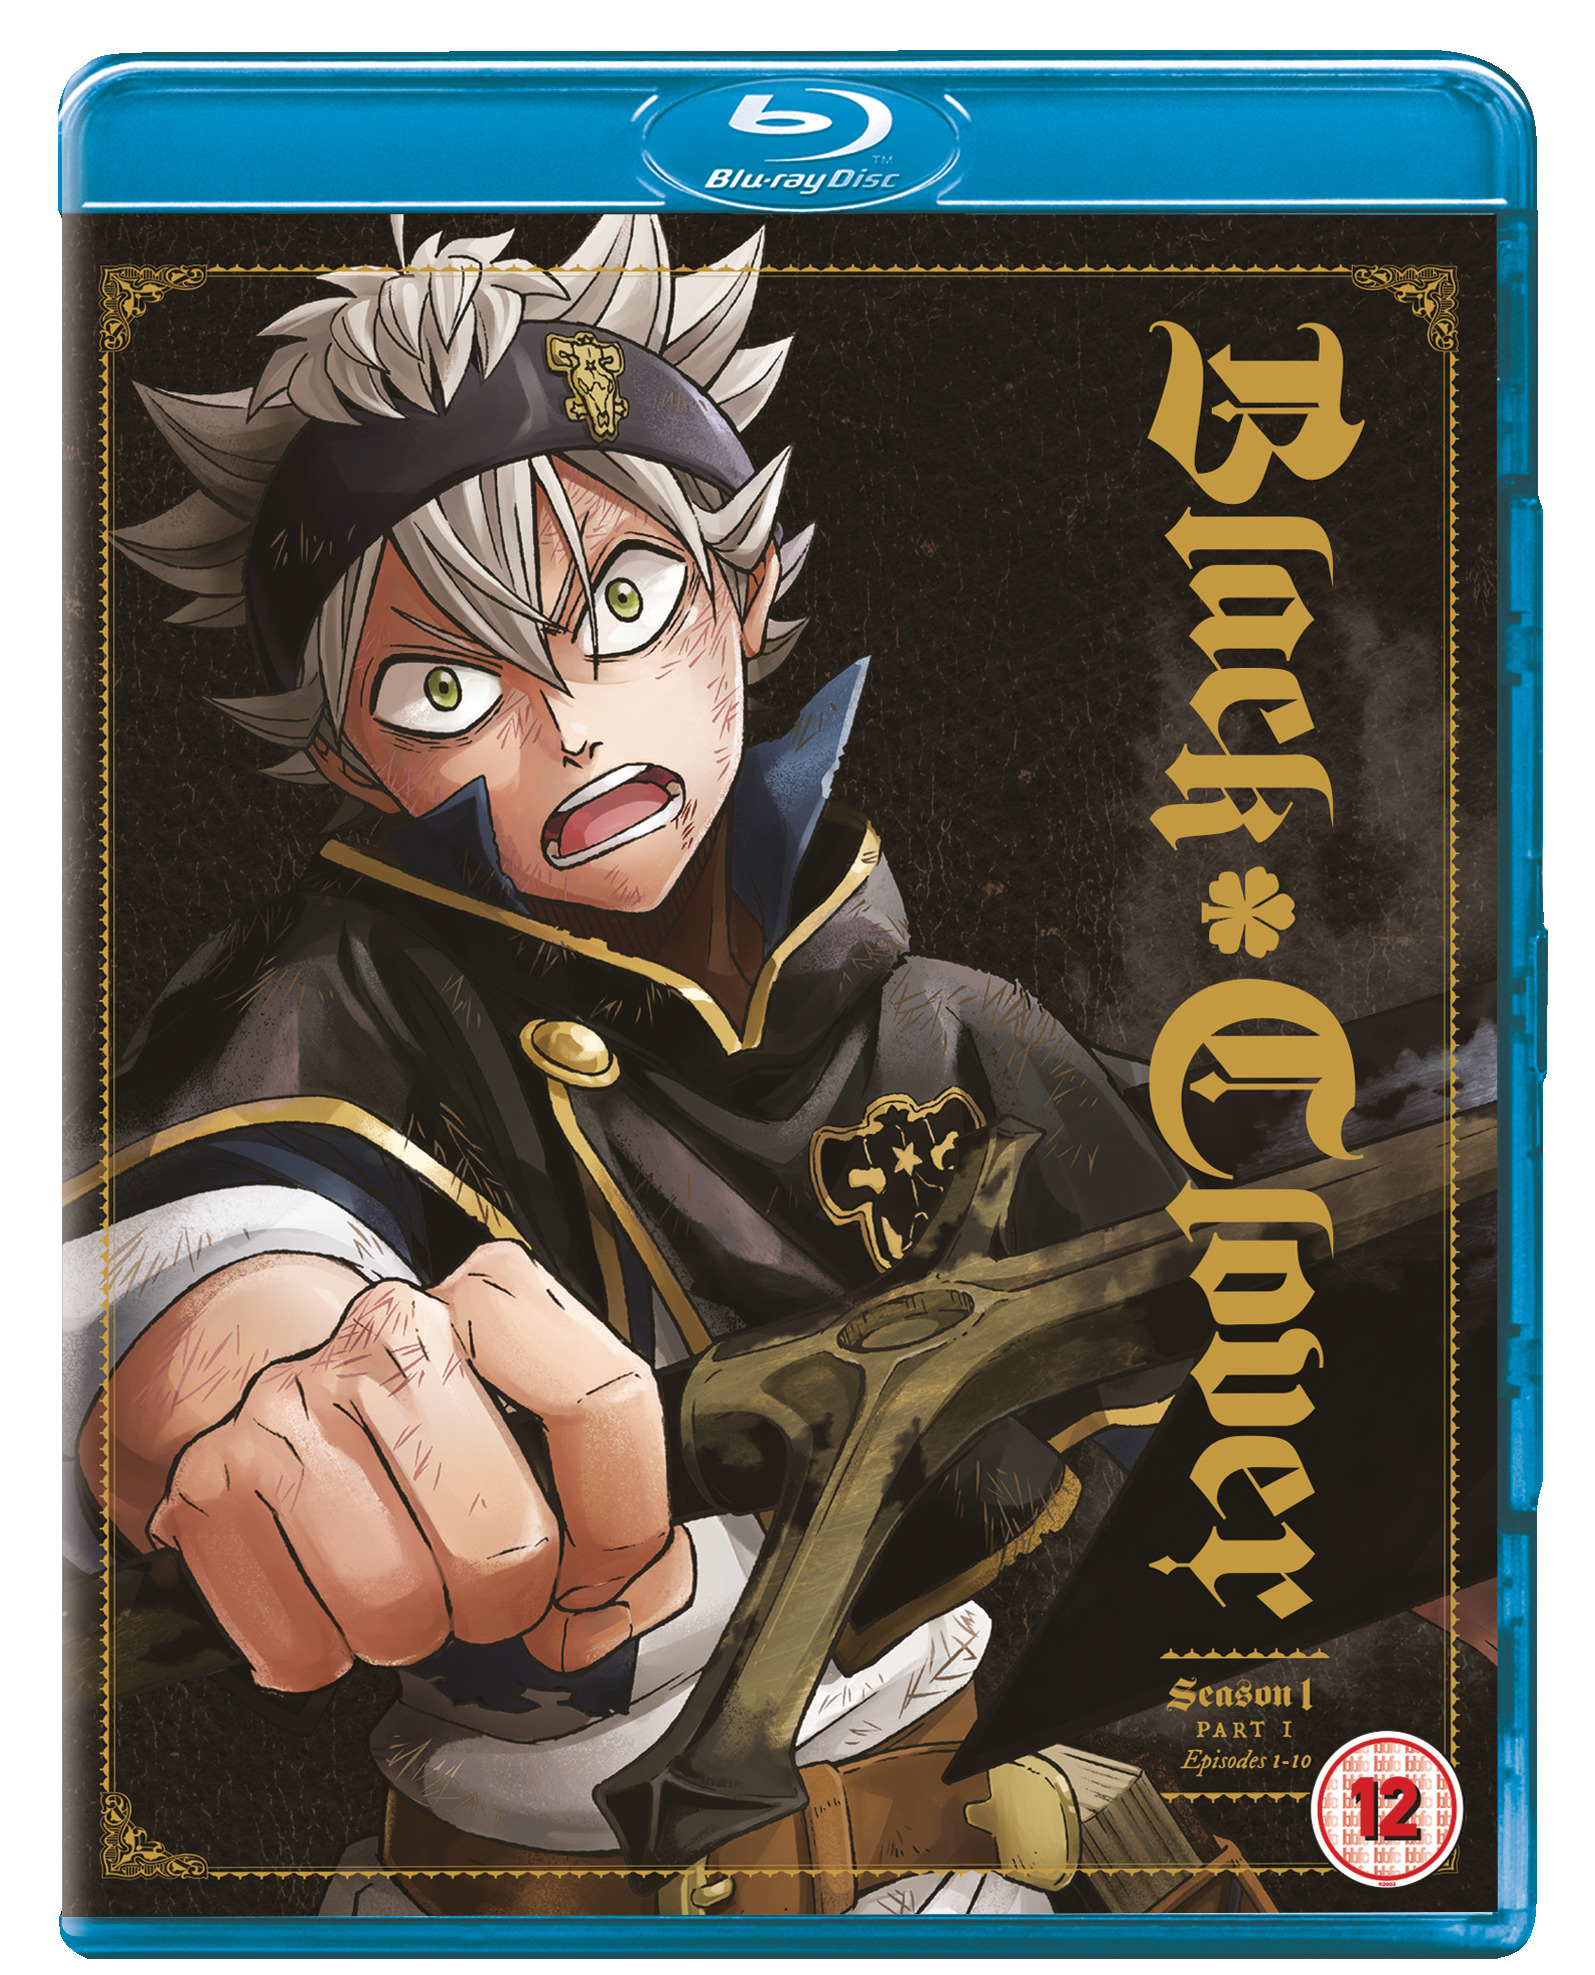 Image result for Black Clover Season 1 Part 1 DVD and Blu ray Combo Pack